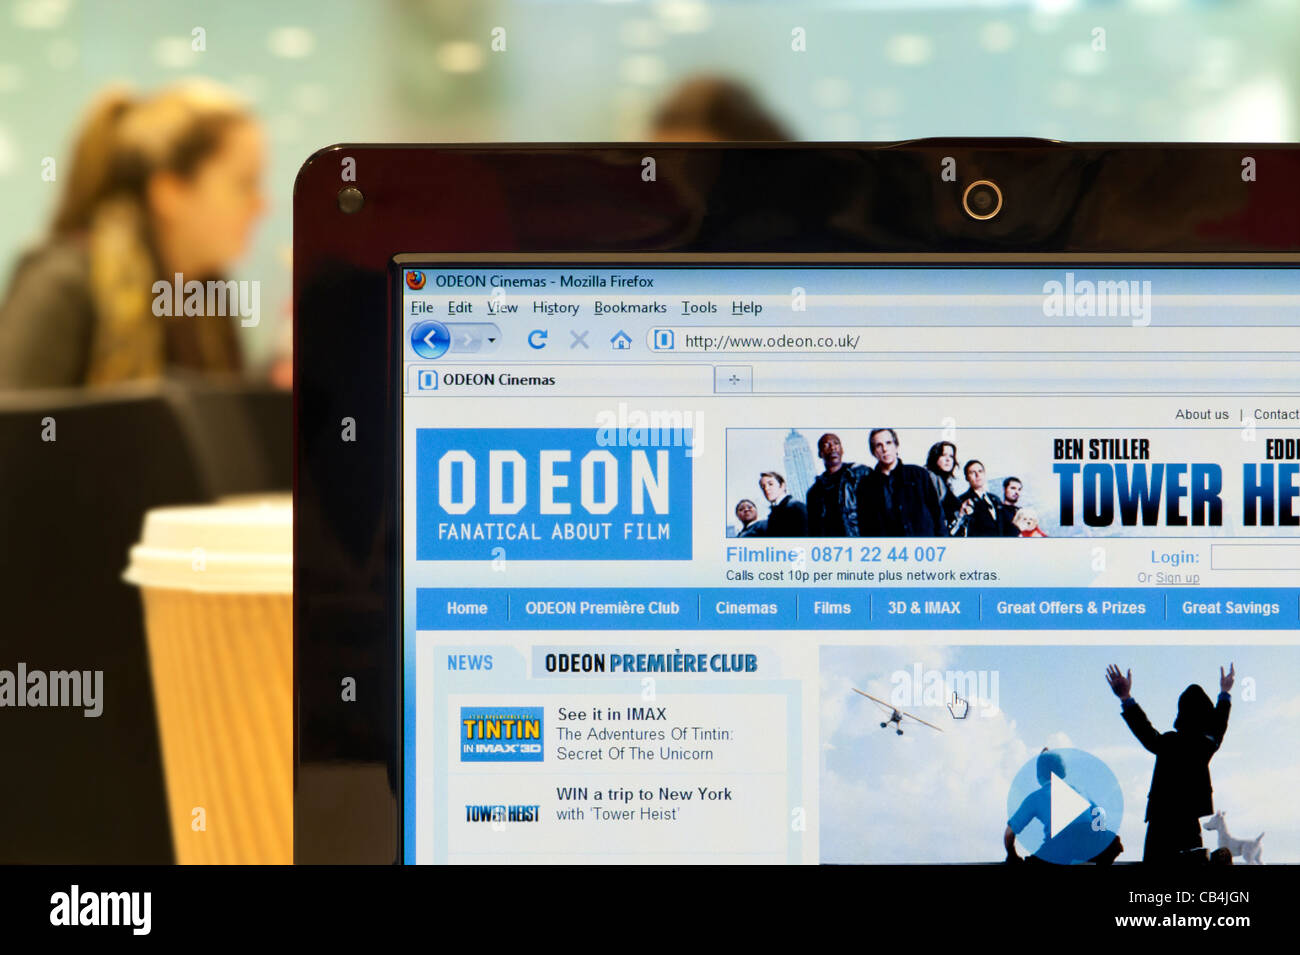 The Odeon website shot in a coffee shop environment (Editorial use only: print, TV, e-book and editorial website). - Stock Image